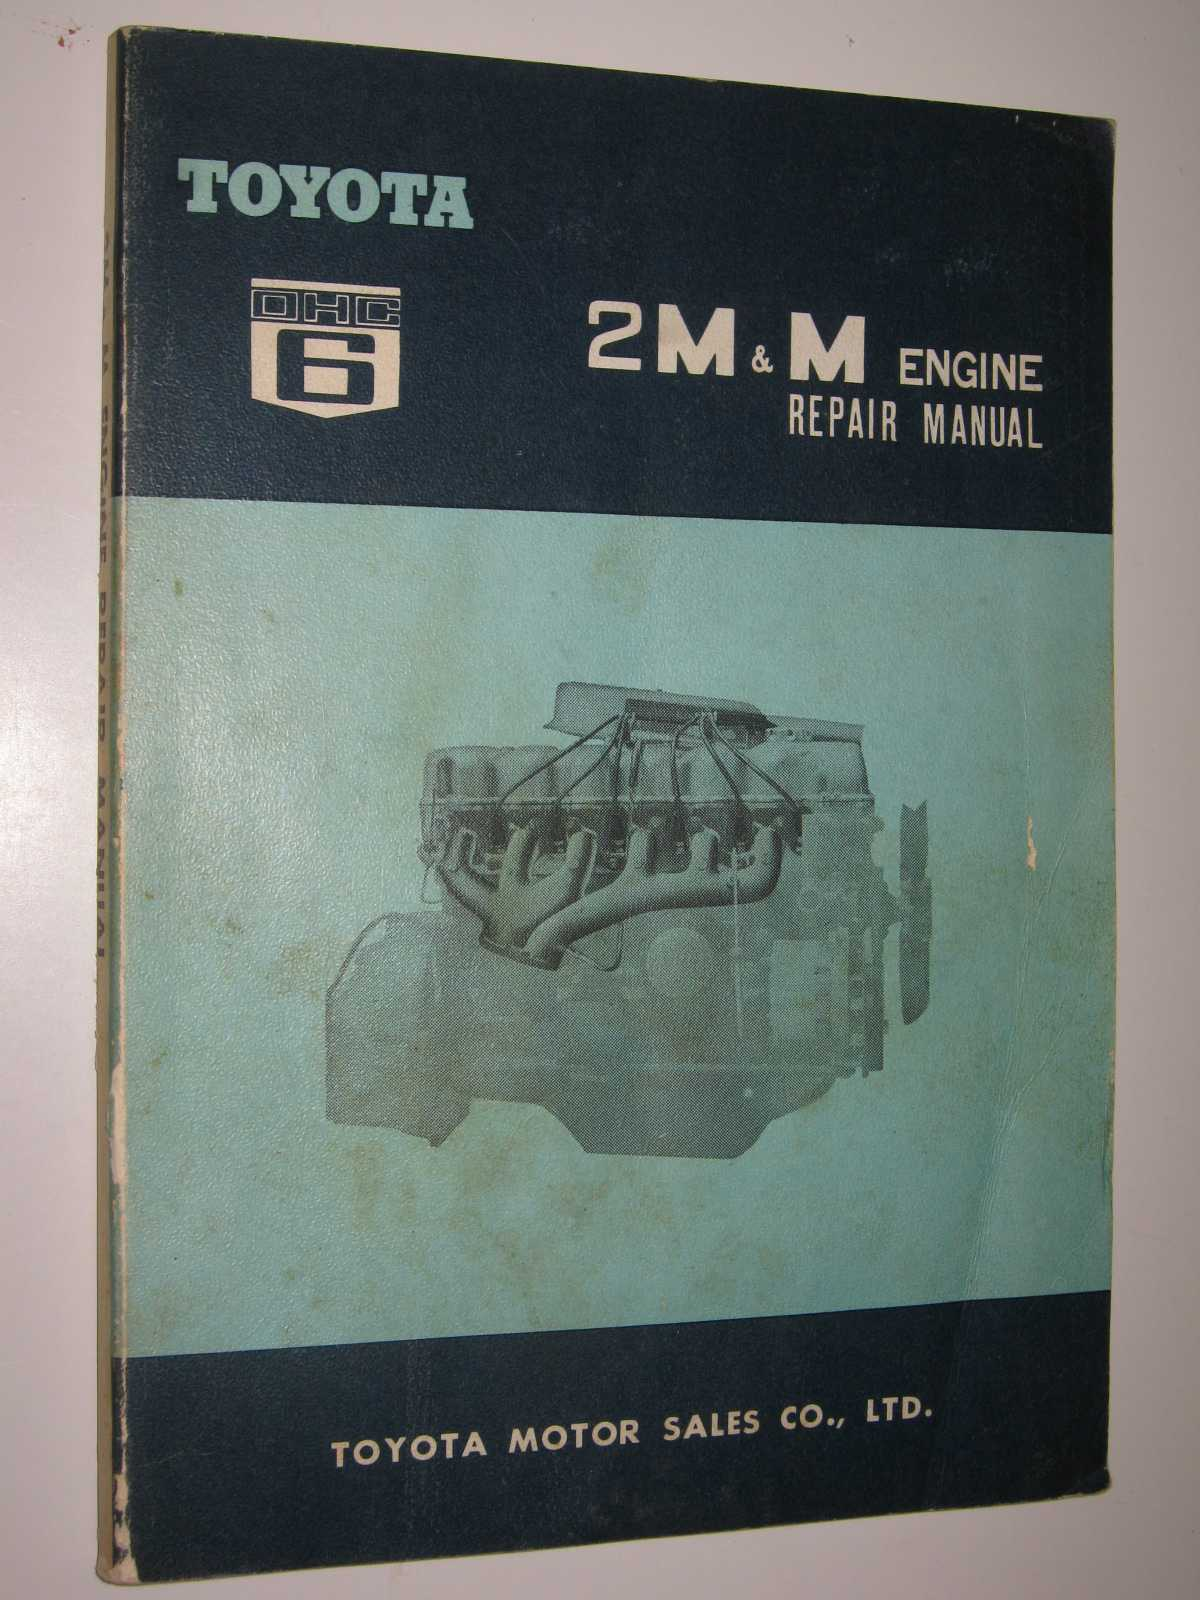 Image for Toyota 2M & M Engine Repair Manual : No. 96110-1